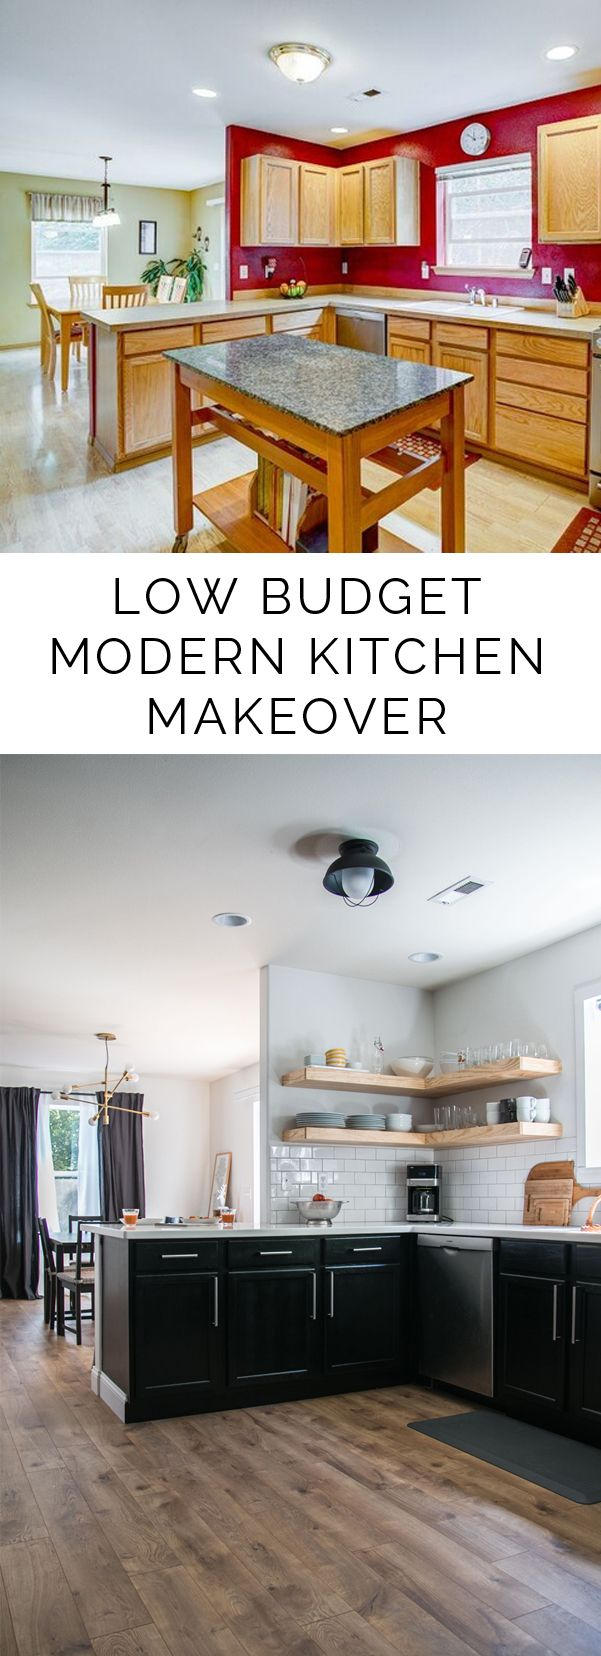 give your home some sweet sweat equity with this gorgeous low budget modern kitchen makeover on - Low Budget Kitchen Remodel